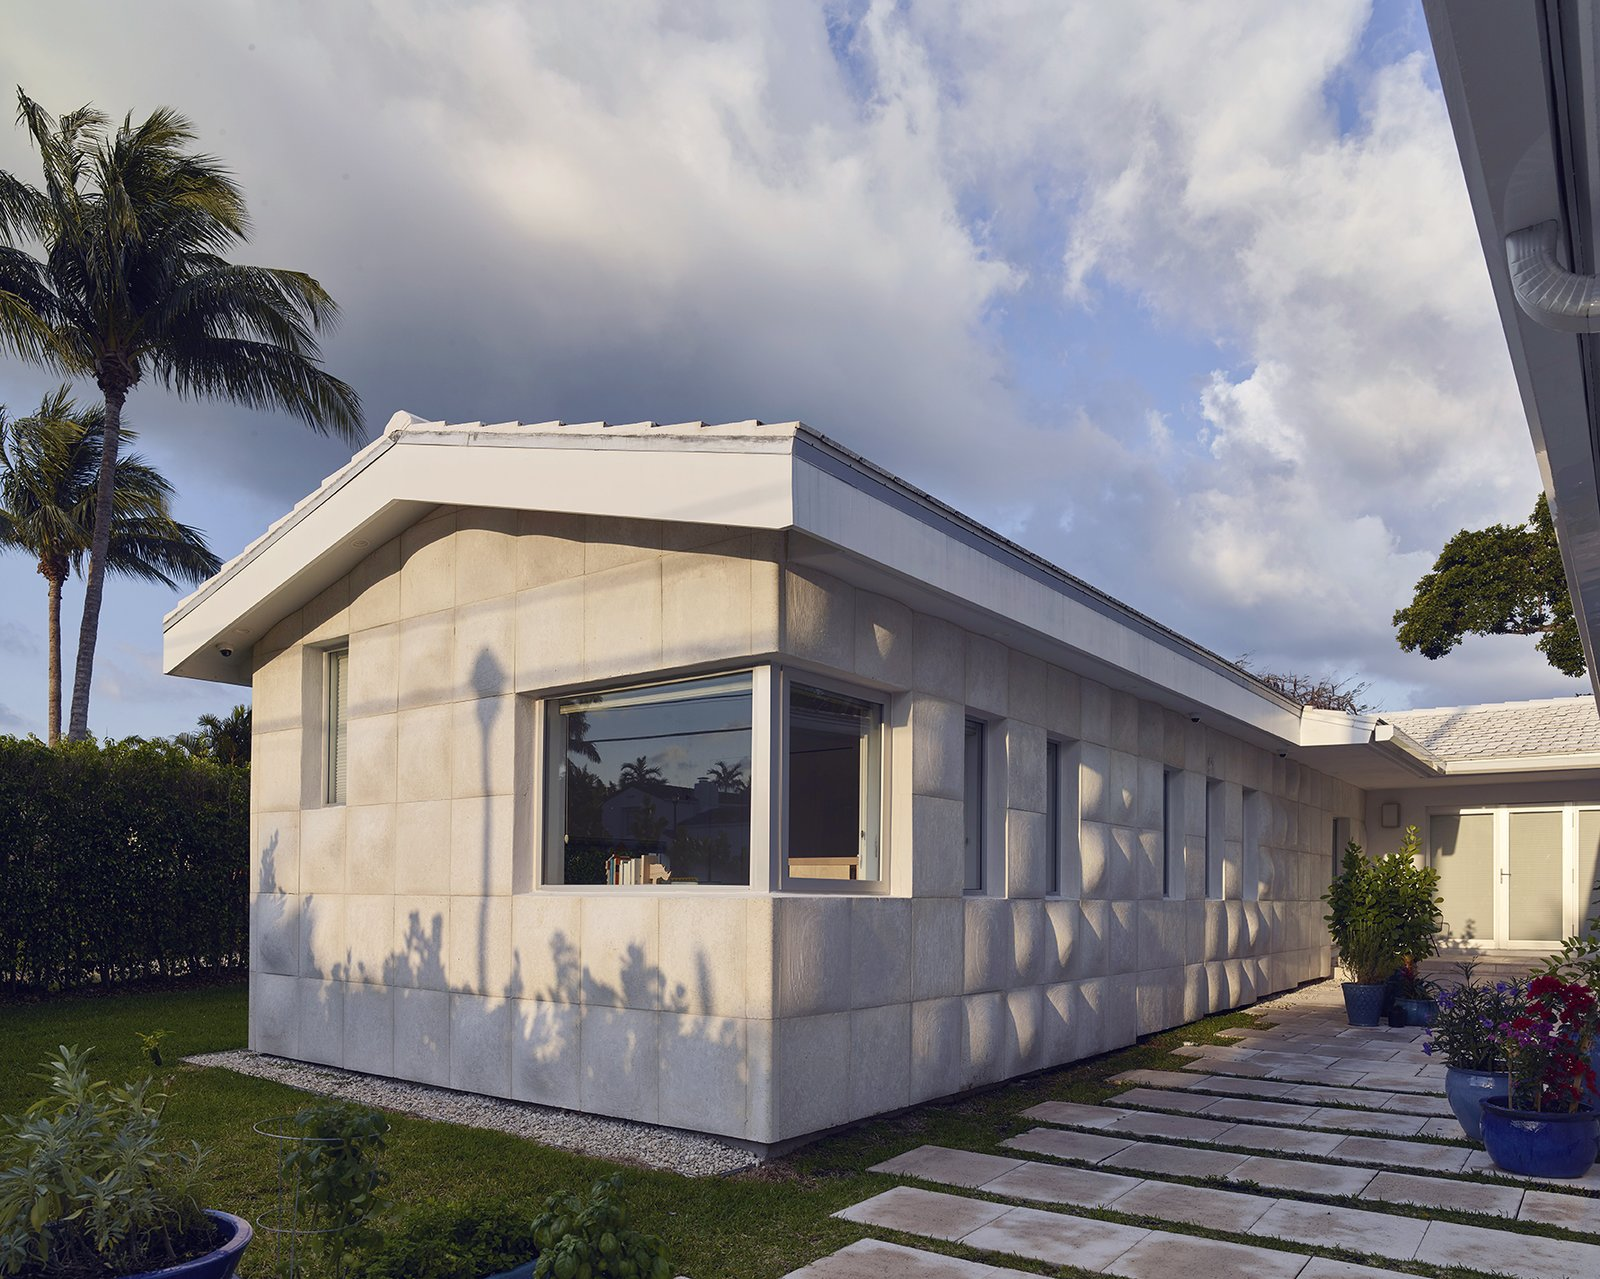 Outdoor, Shrubs, Grass, Front Yard, Raised Planters, Walkways, and Hardscapes A 450-square-foot addition reconfigured the ranch house from an  L- to a U-shape. - Miami, Florida Dwell Magazine : July / August 2017  Photo 4 of 12 in A Professor and Designer Tests a New Hybrid Material on His Miami Beach Home